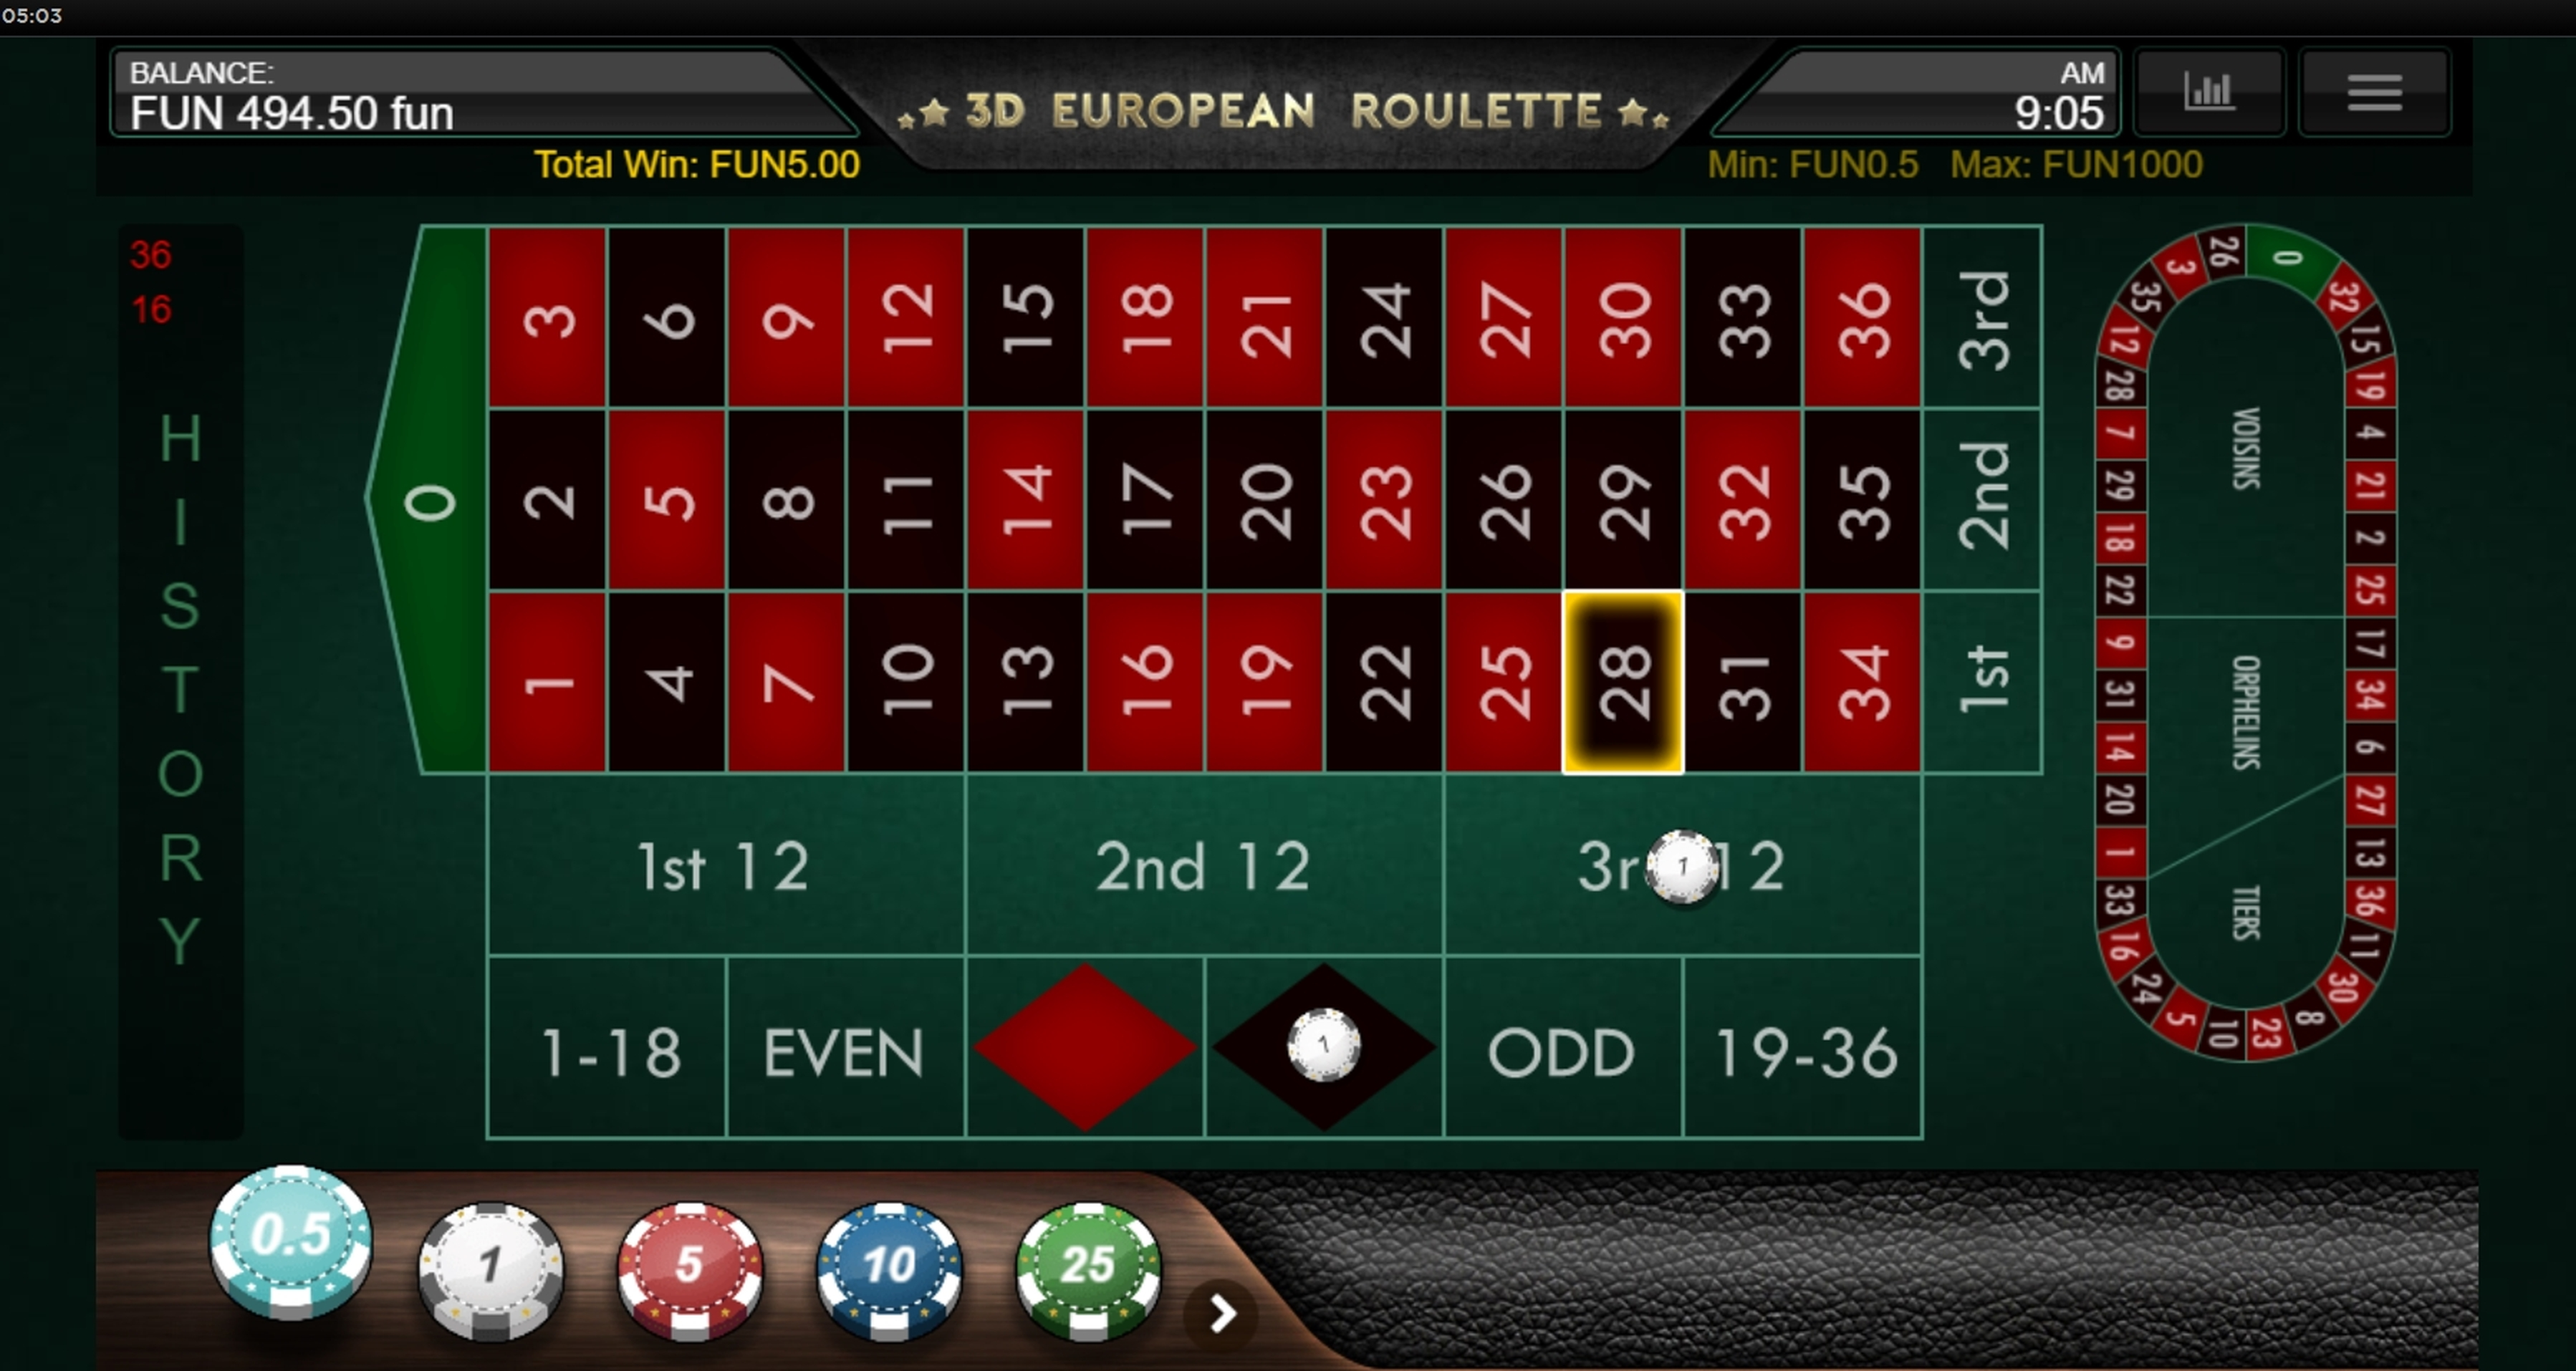 Win Money in 3D European Roulette (IronDog) Free Slot Game by IronDog